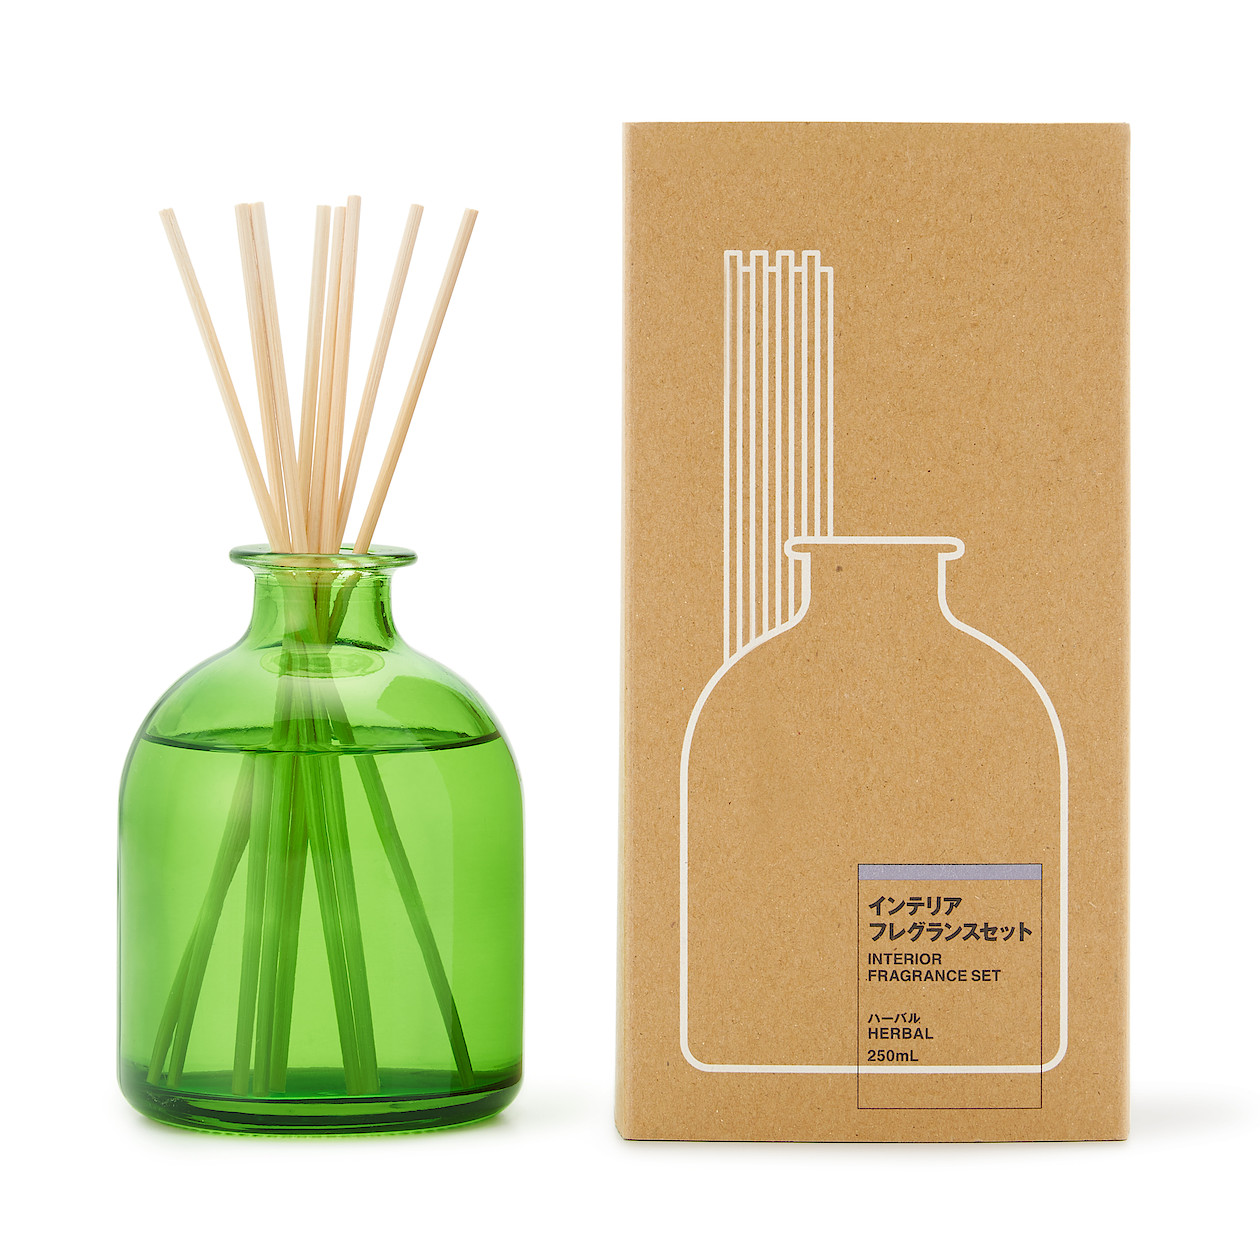 INTERIOR FRAGRANCE SET / HERBAL